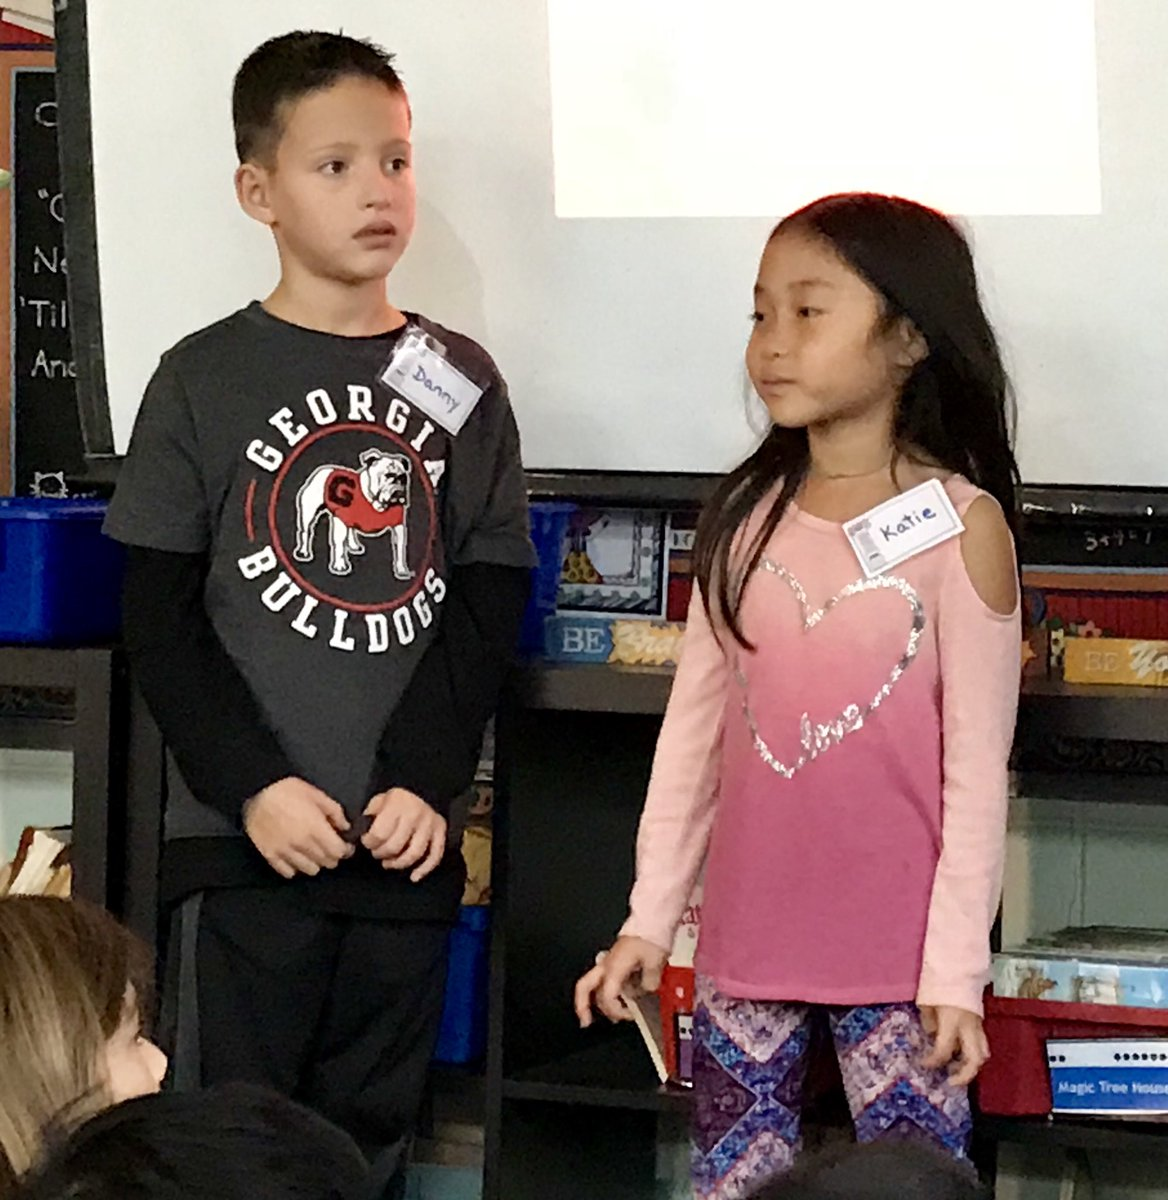 test Twitter Media - We are learning about conflict resolution with Mrs. Habel this morning! #d30learns https://t.co/yD8wEvbhgD